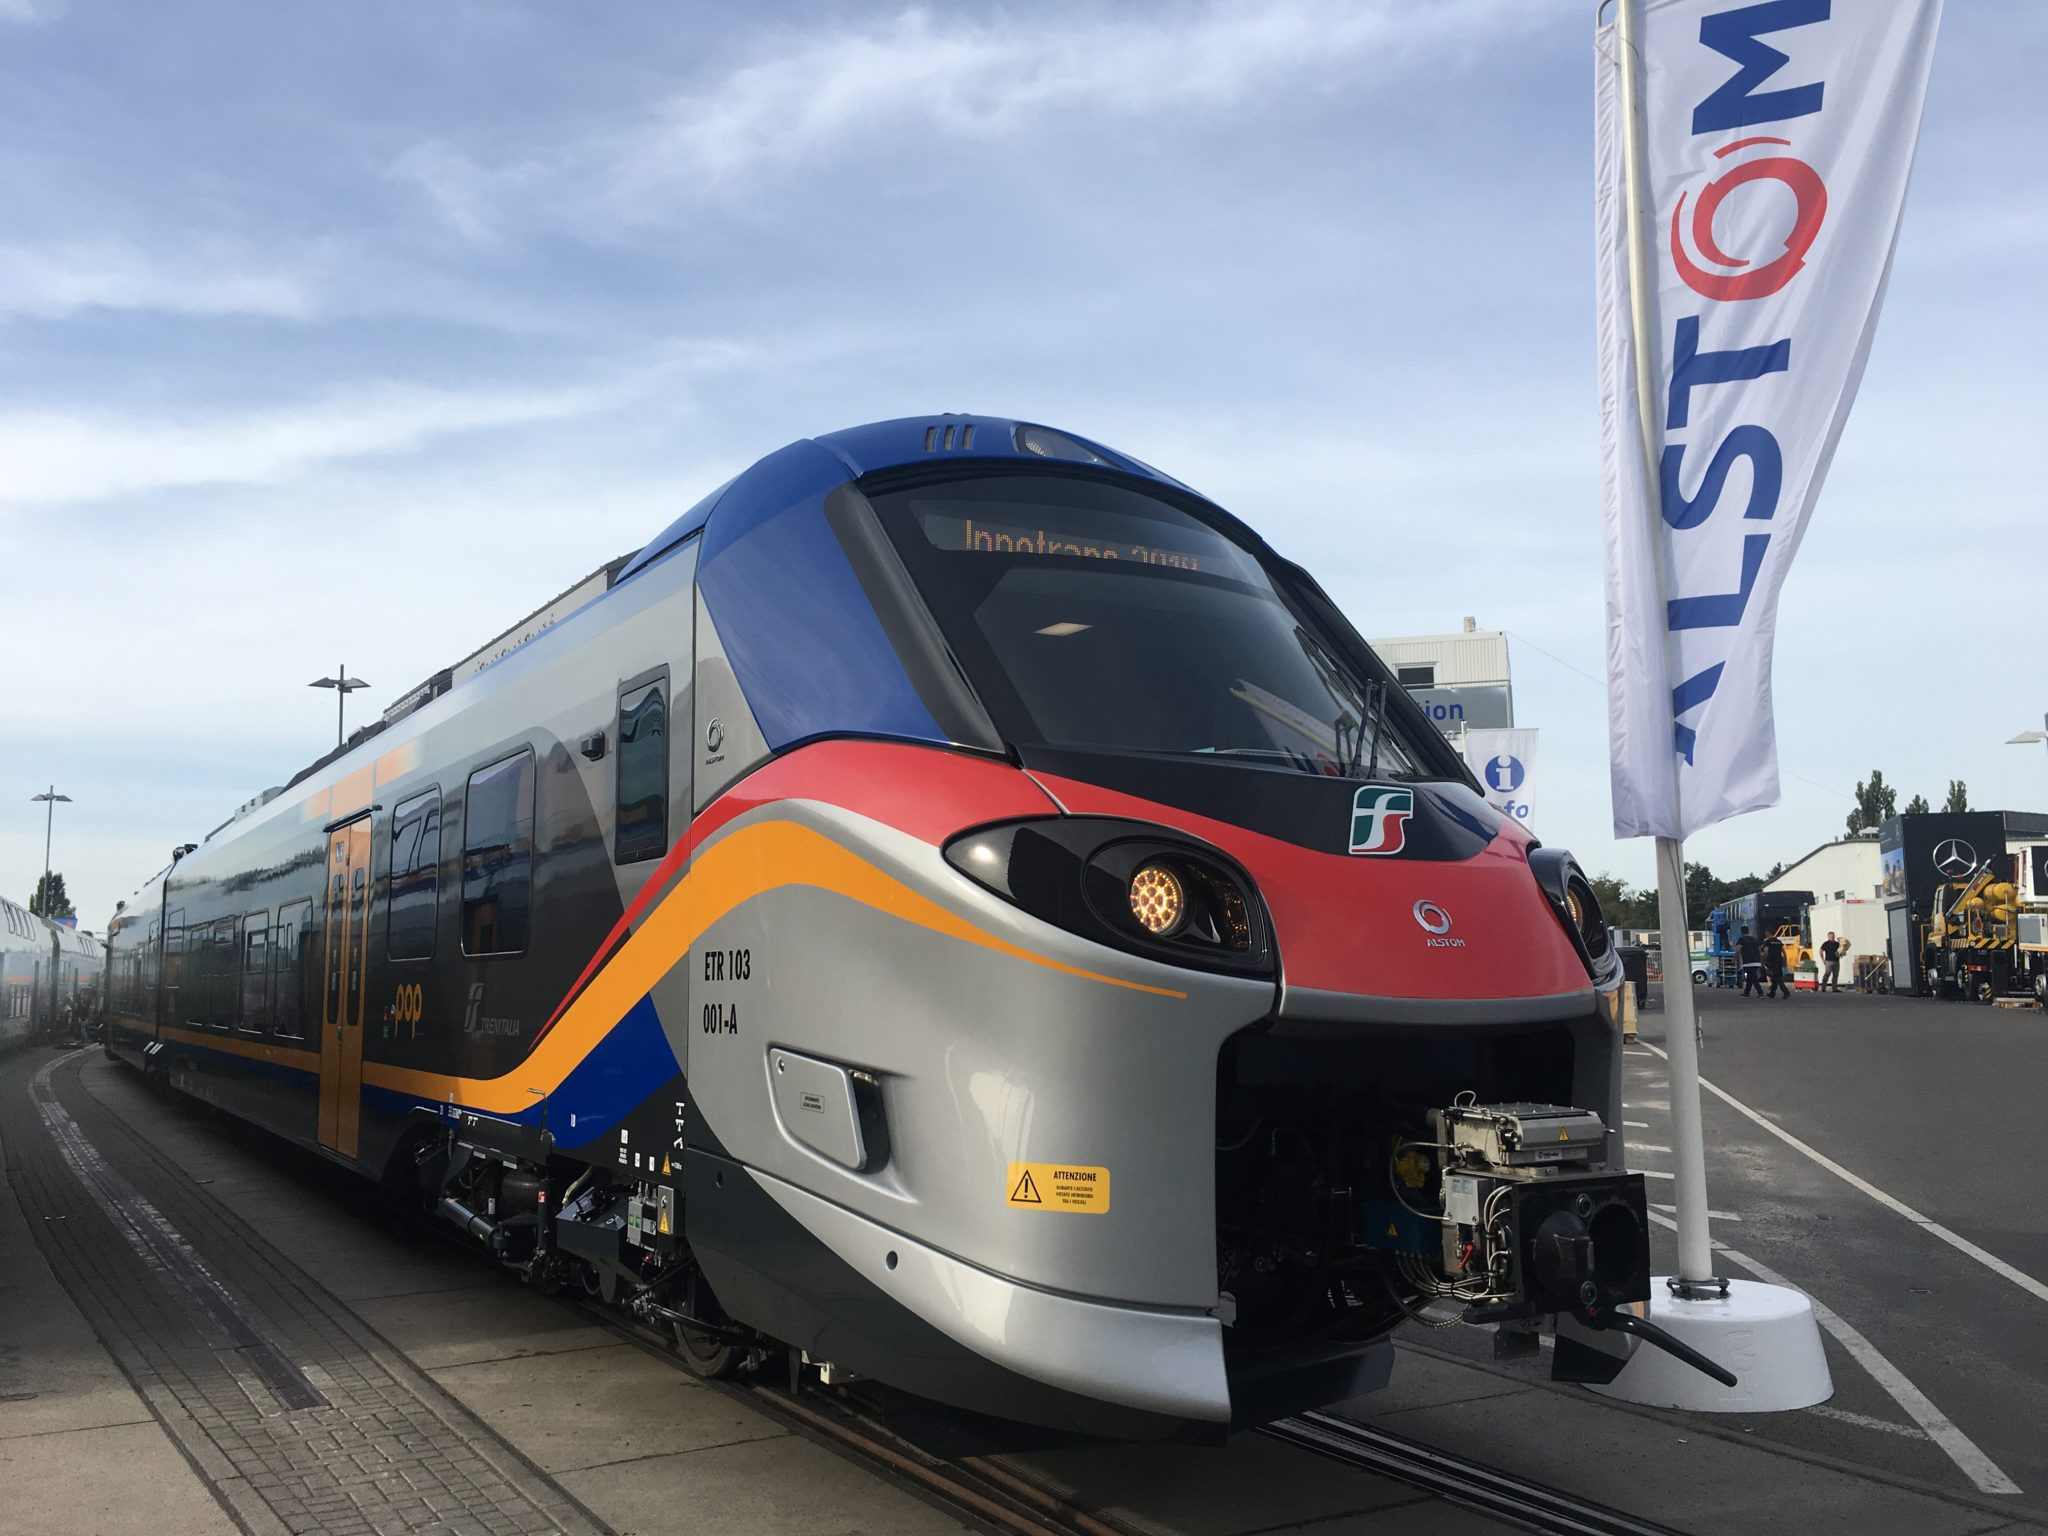 Alstom Jazz train for Trenitalia at InnoTrans 2018